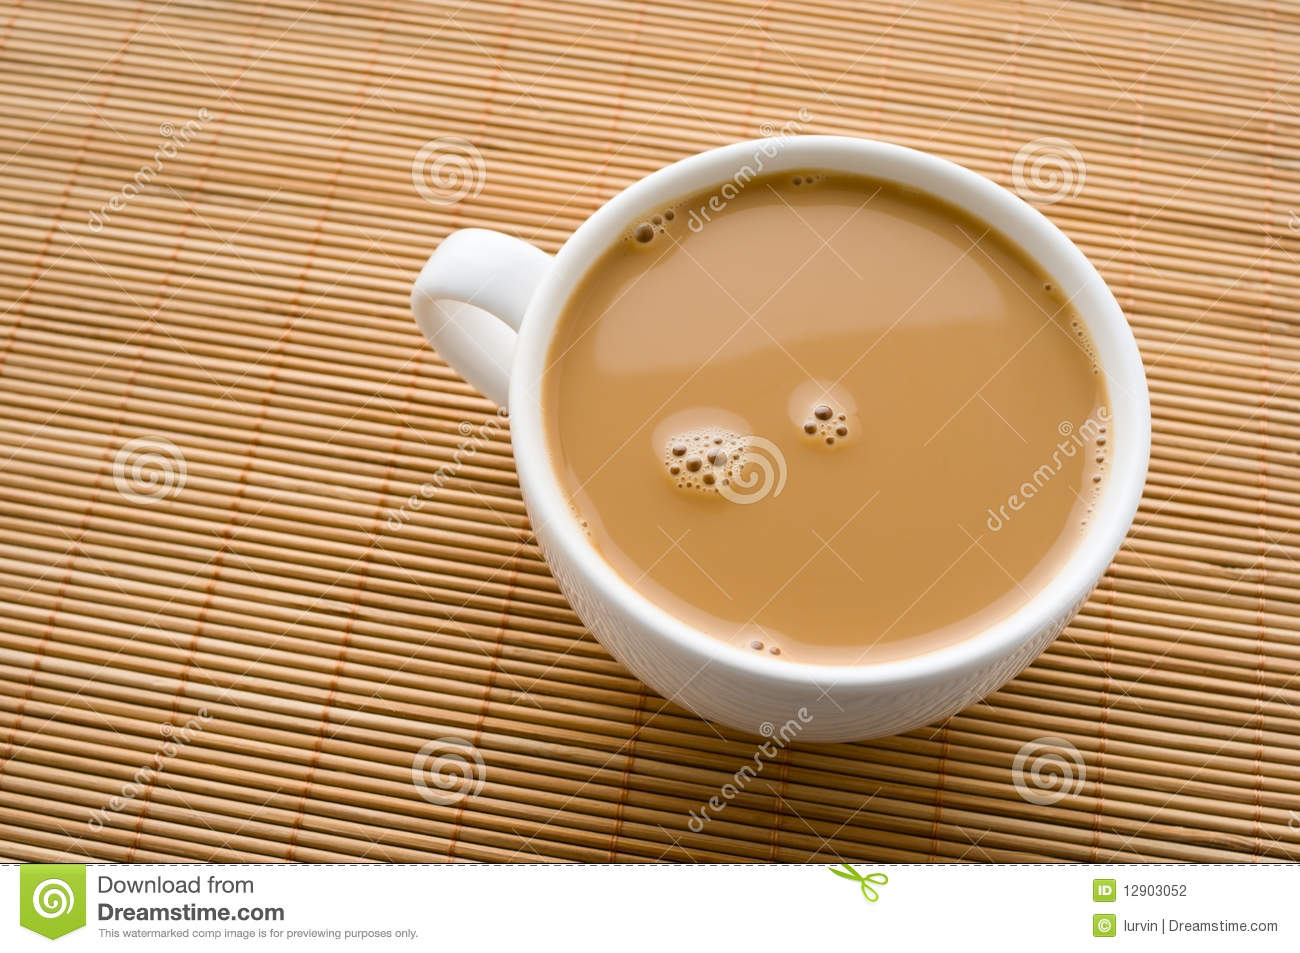 http://thumbs.dreamstime.com/z/cup-coffee-cream-12903052.jpg